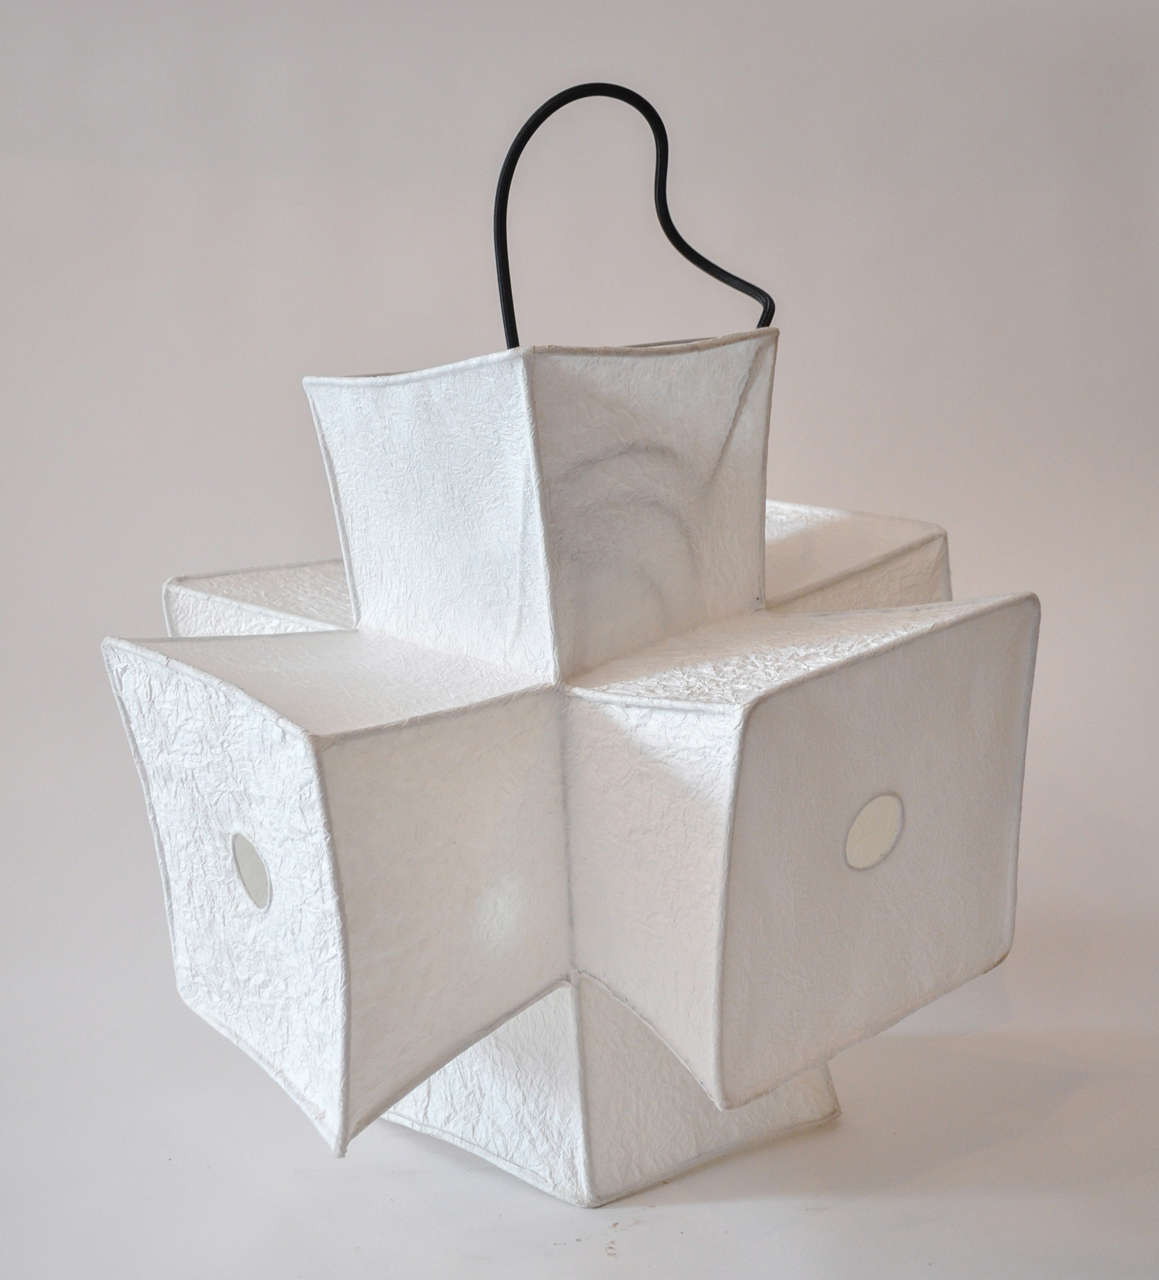 Light fixture and paper lantern by andrew stansell at 1stdibs - Paper light fixtures ...